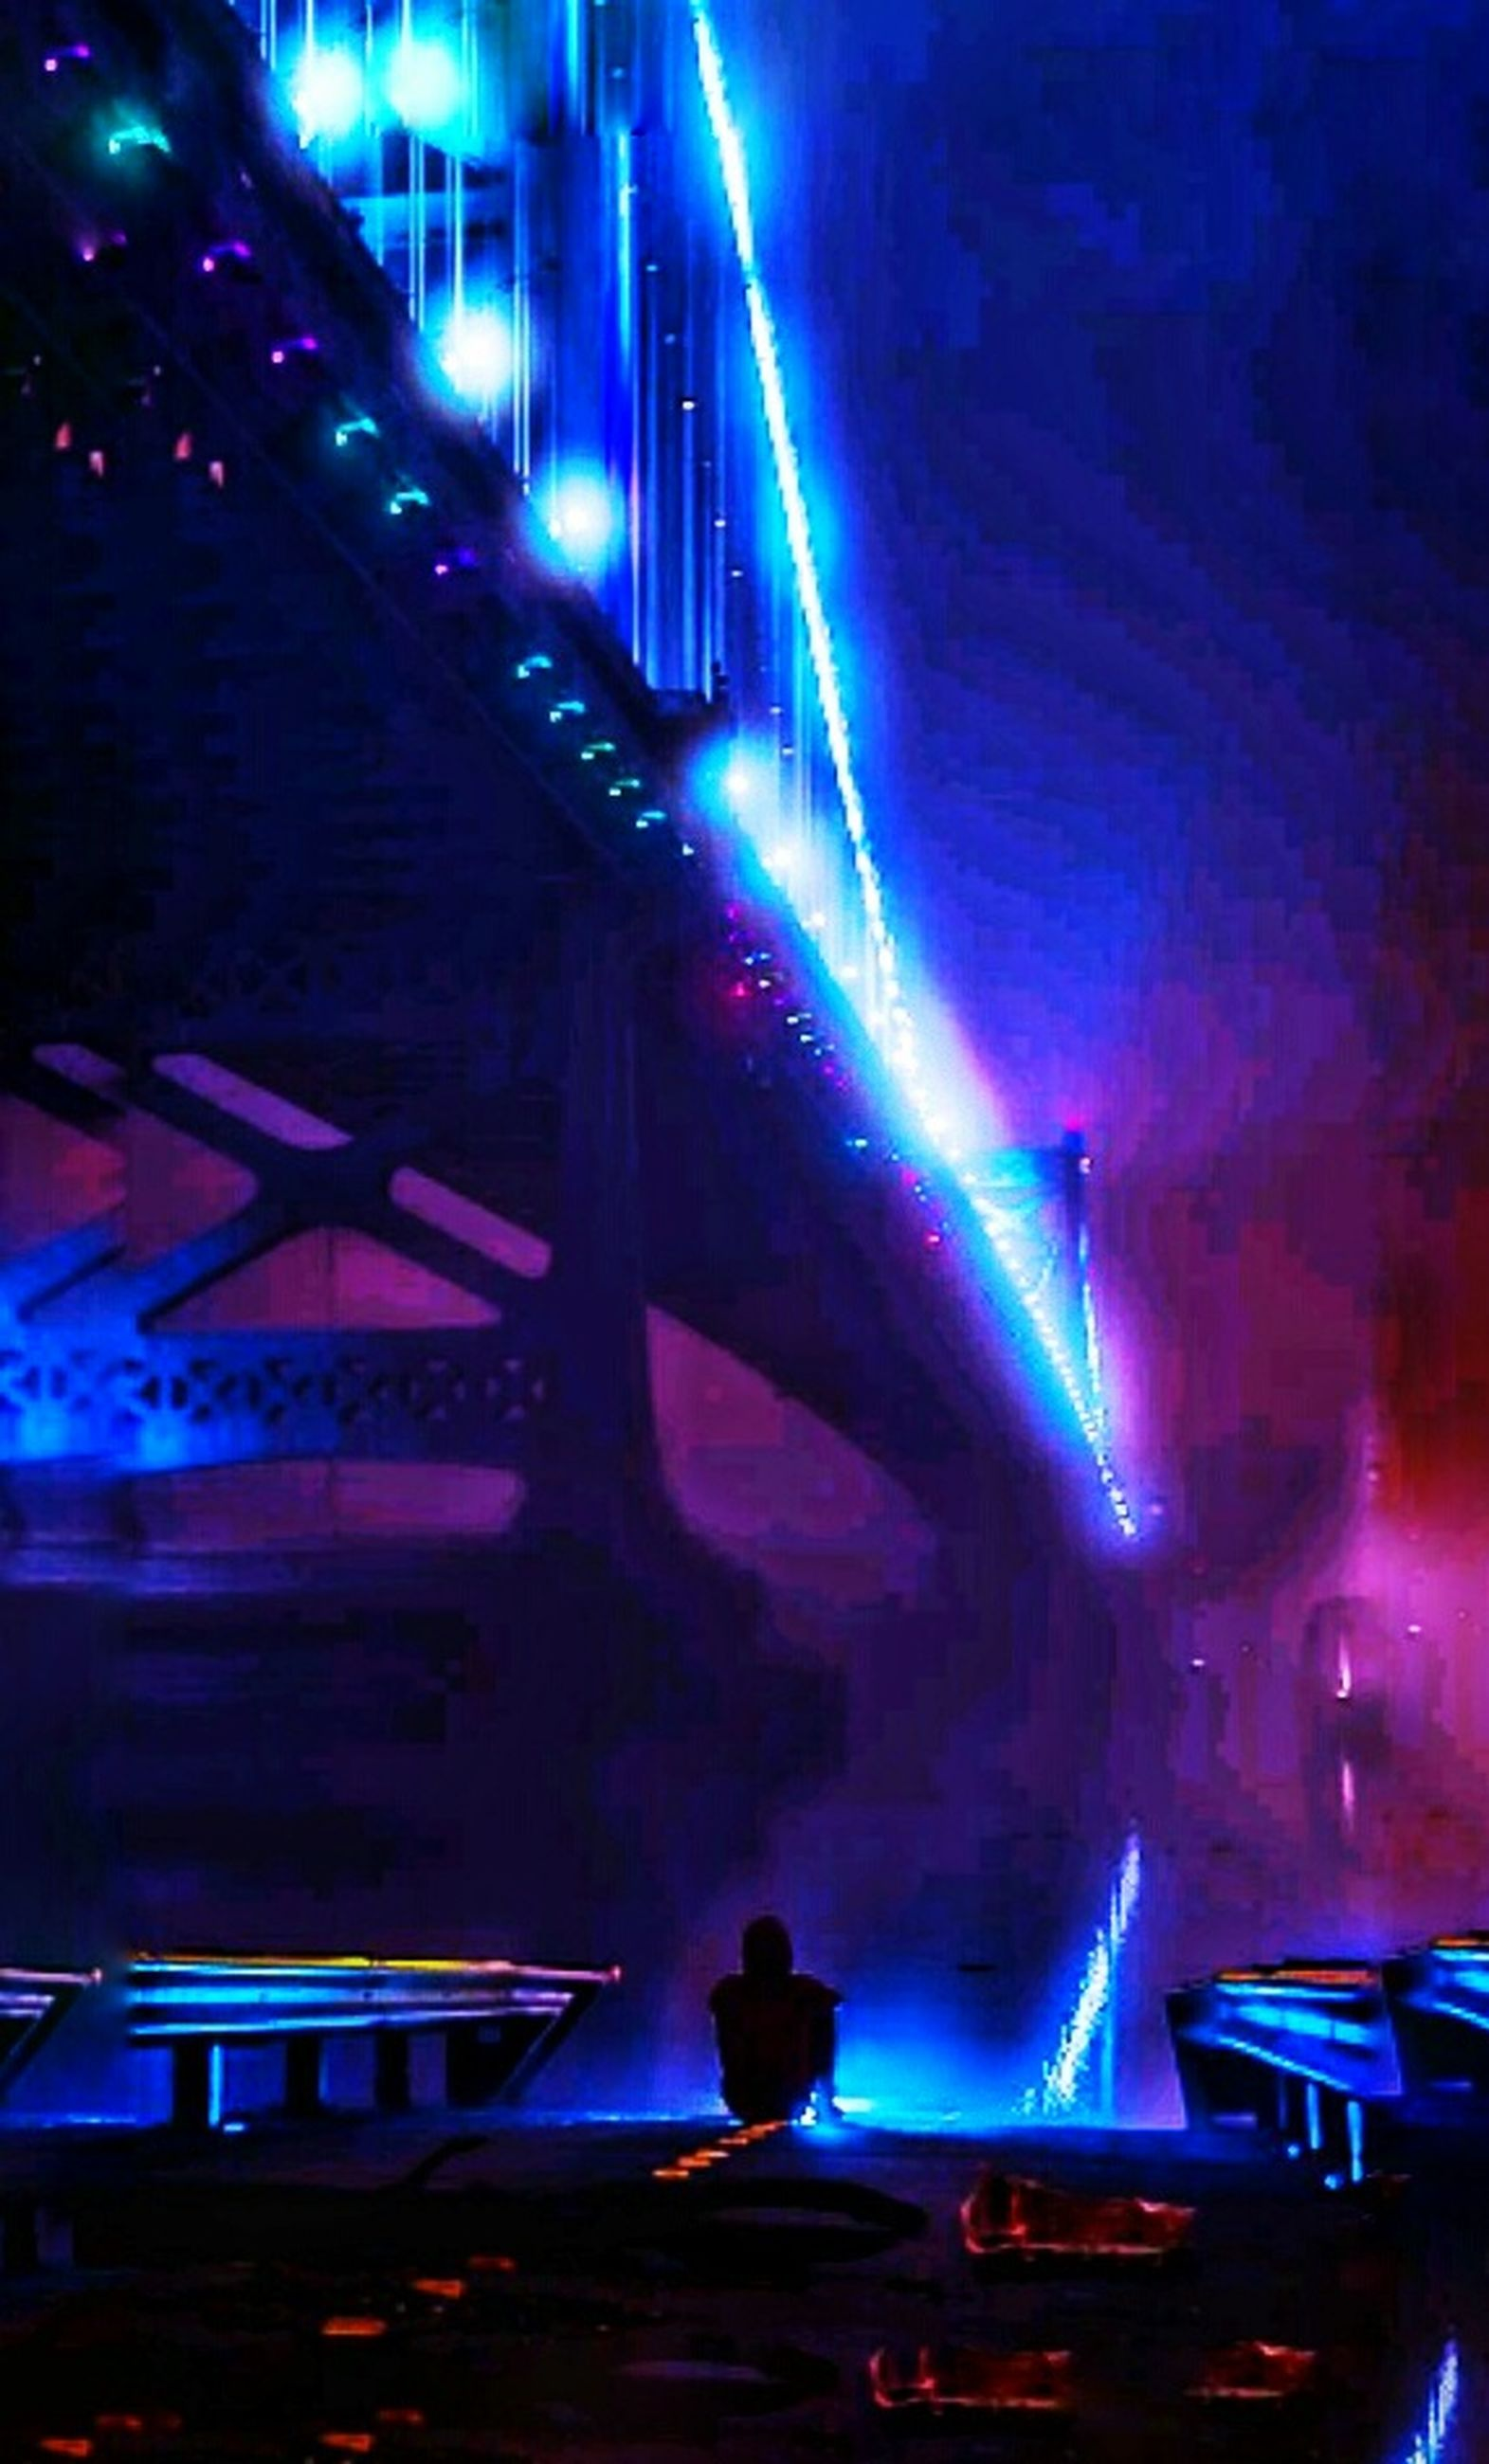 illuminated, night, arts culture and entertainment, stage - performance space, performance, nightlife, performing arts event, stage light, one person, people, indoors, built structure, adults only, adult, one man only, neon, architecture, only men